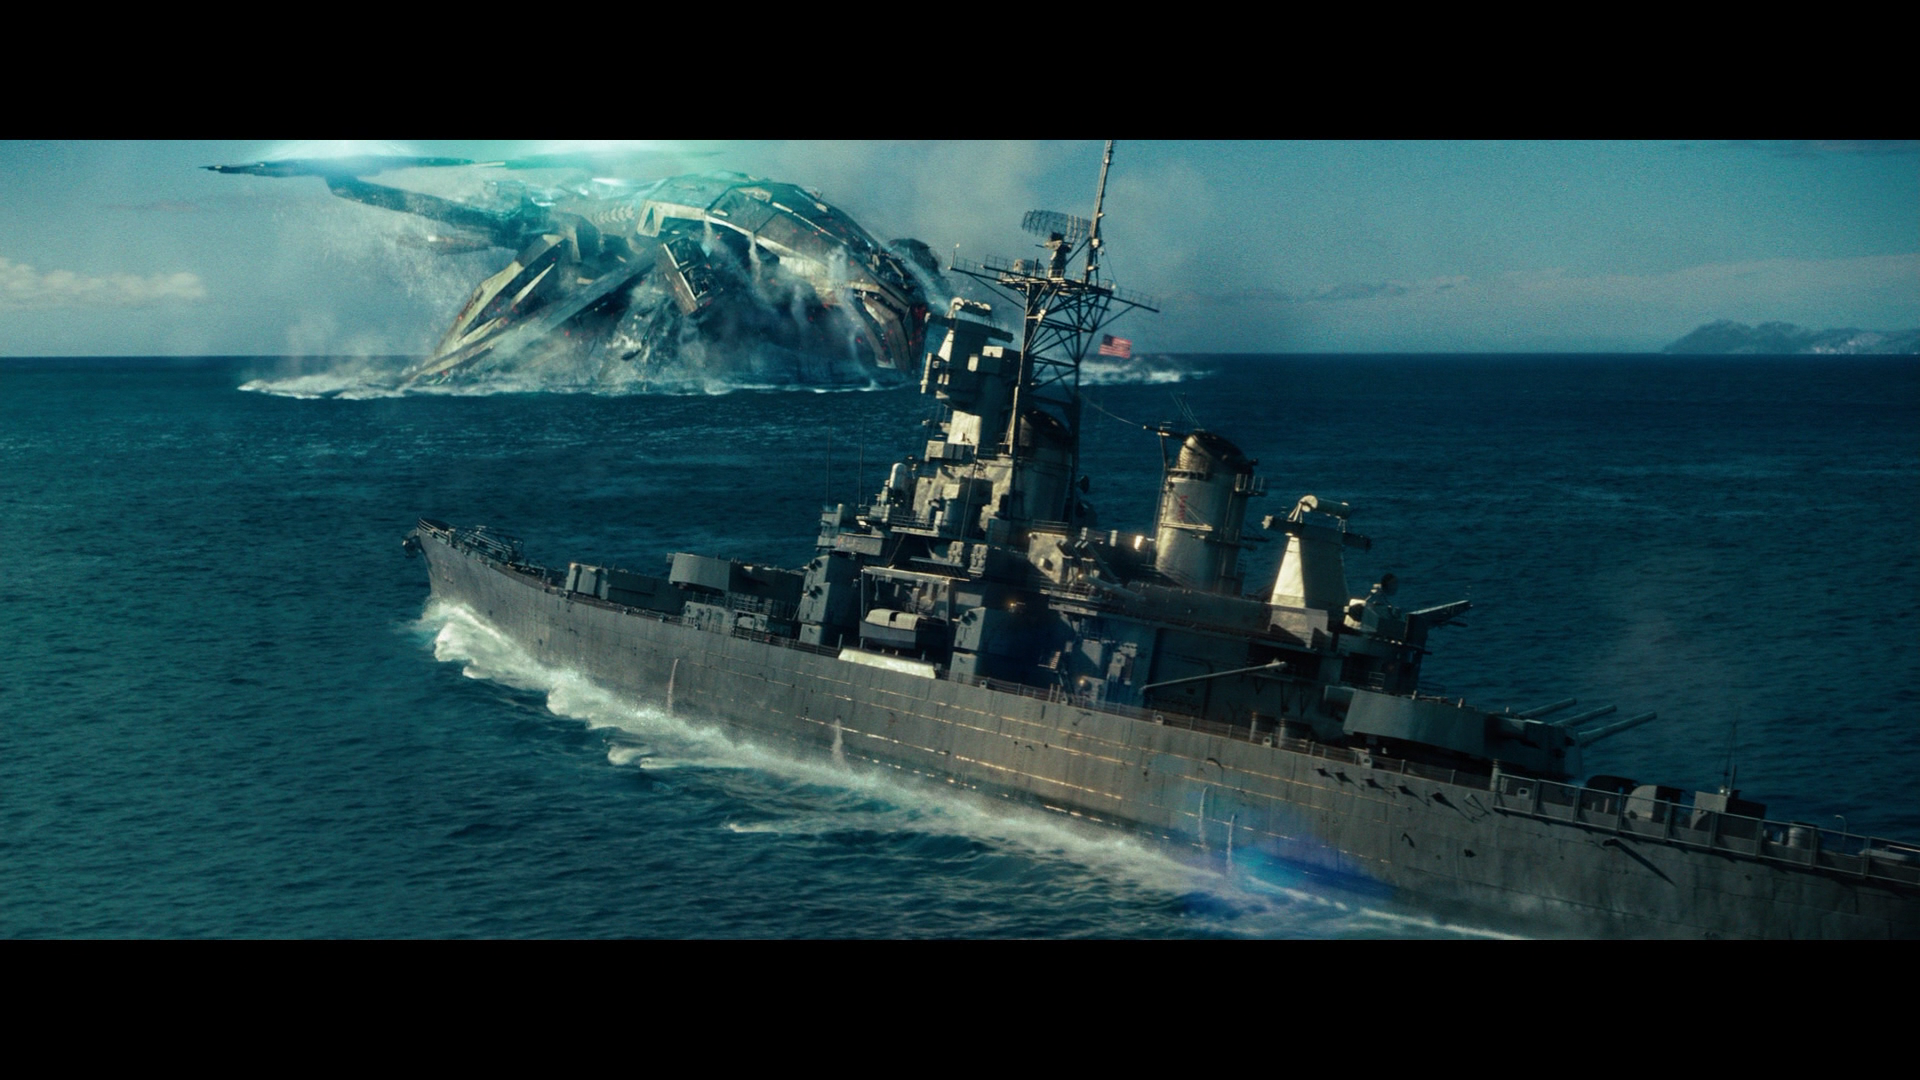 Review Battleship BD Screen Caps Moviemans Guide to the Movies 1920x1080